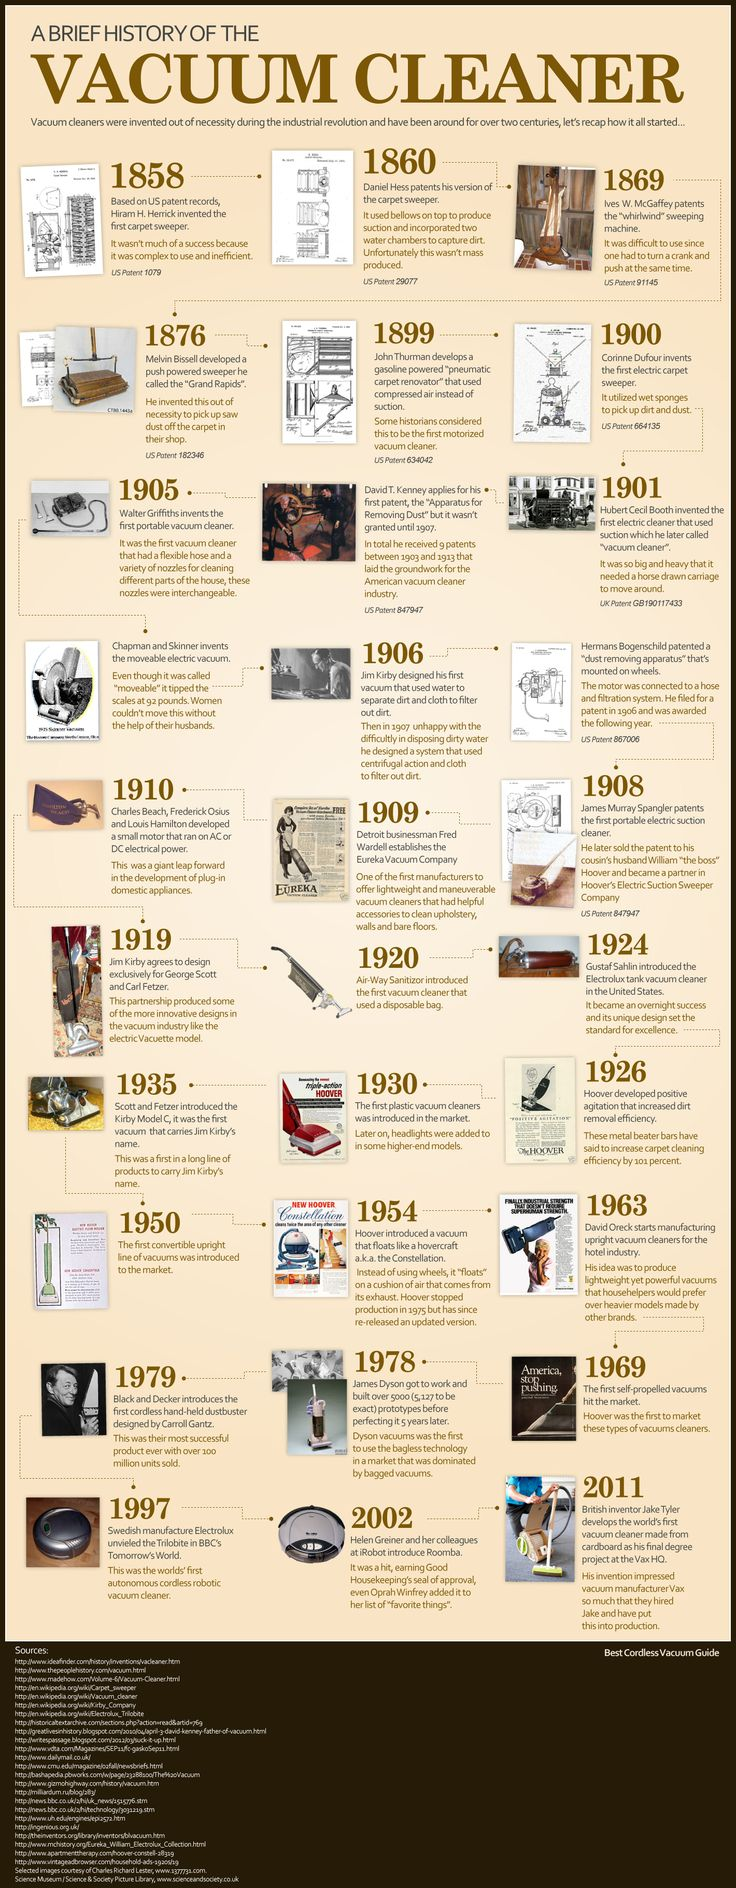 Vacuum Cleaner History Infographic - A bird's eye view on the history of the vacuum cleaner. From the sweeper to cardboard vacuums, it's all listed here.